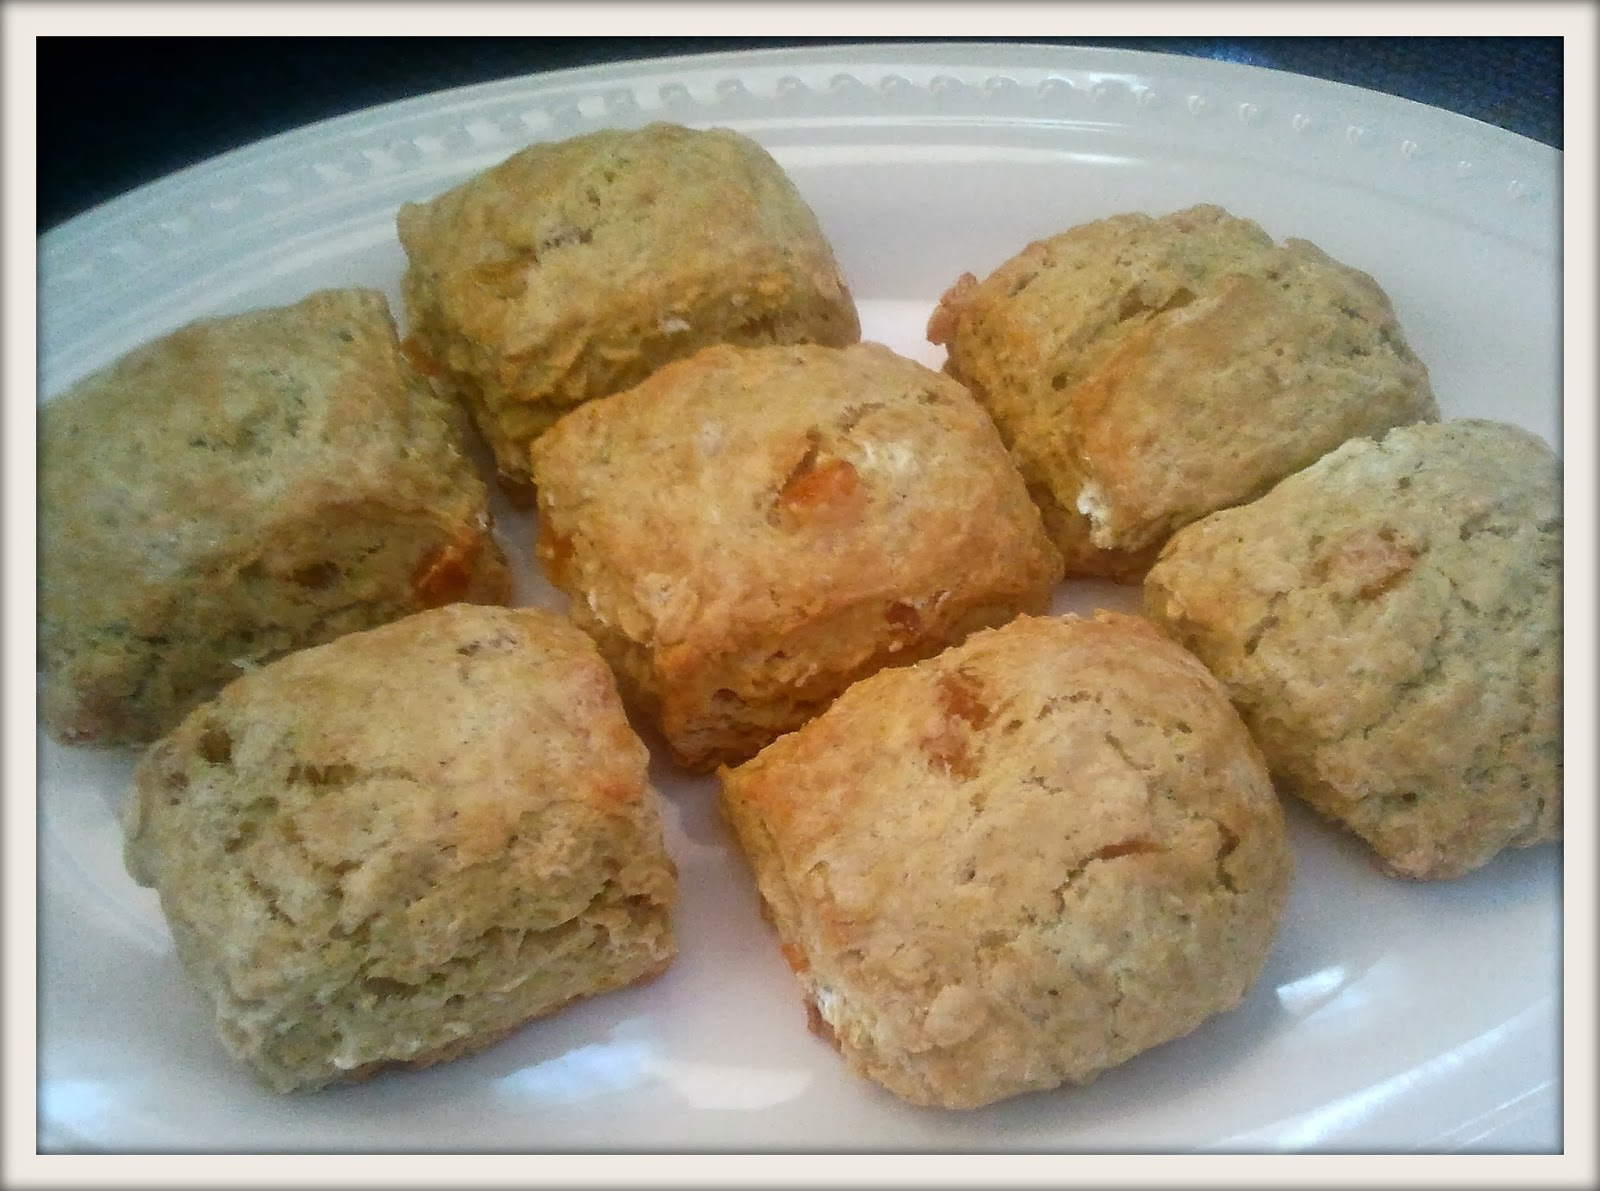 RECIPE: Orange Cardamom Oatmeal Scones